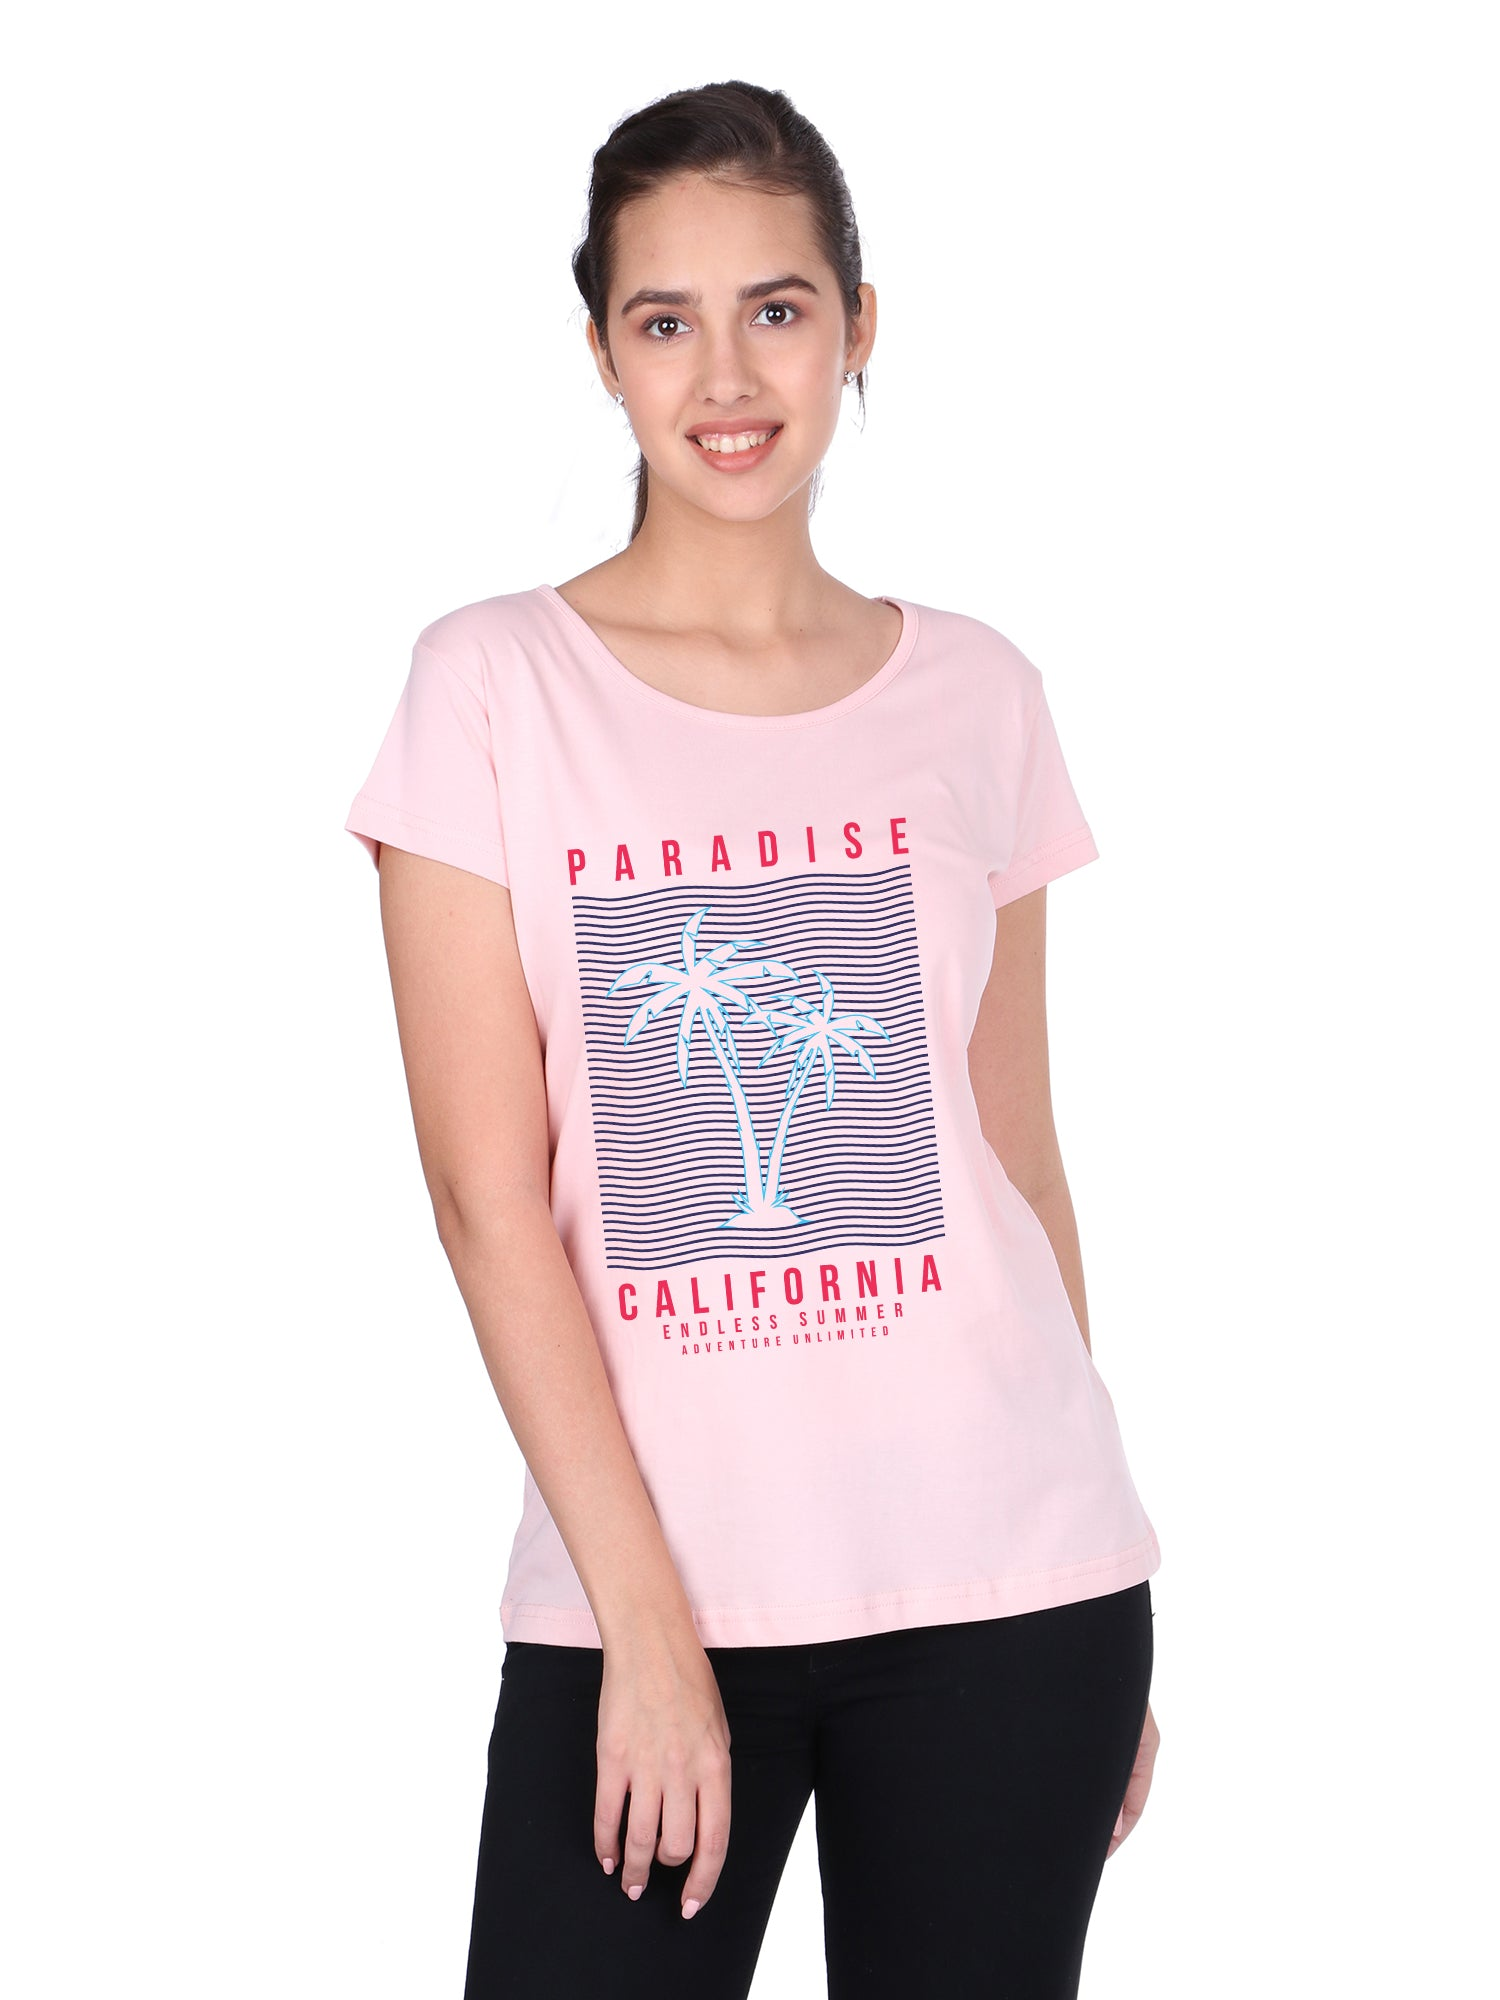 Bueno Life Women's Cotton Printed T-Shirt - Paradise California (Pink)